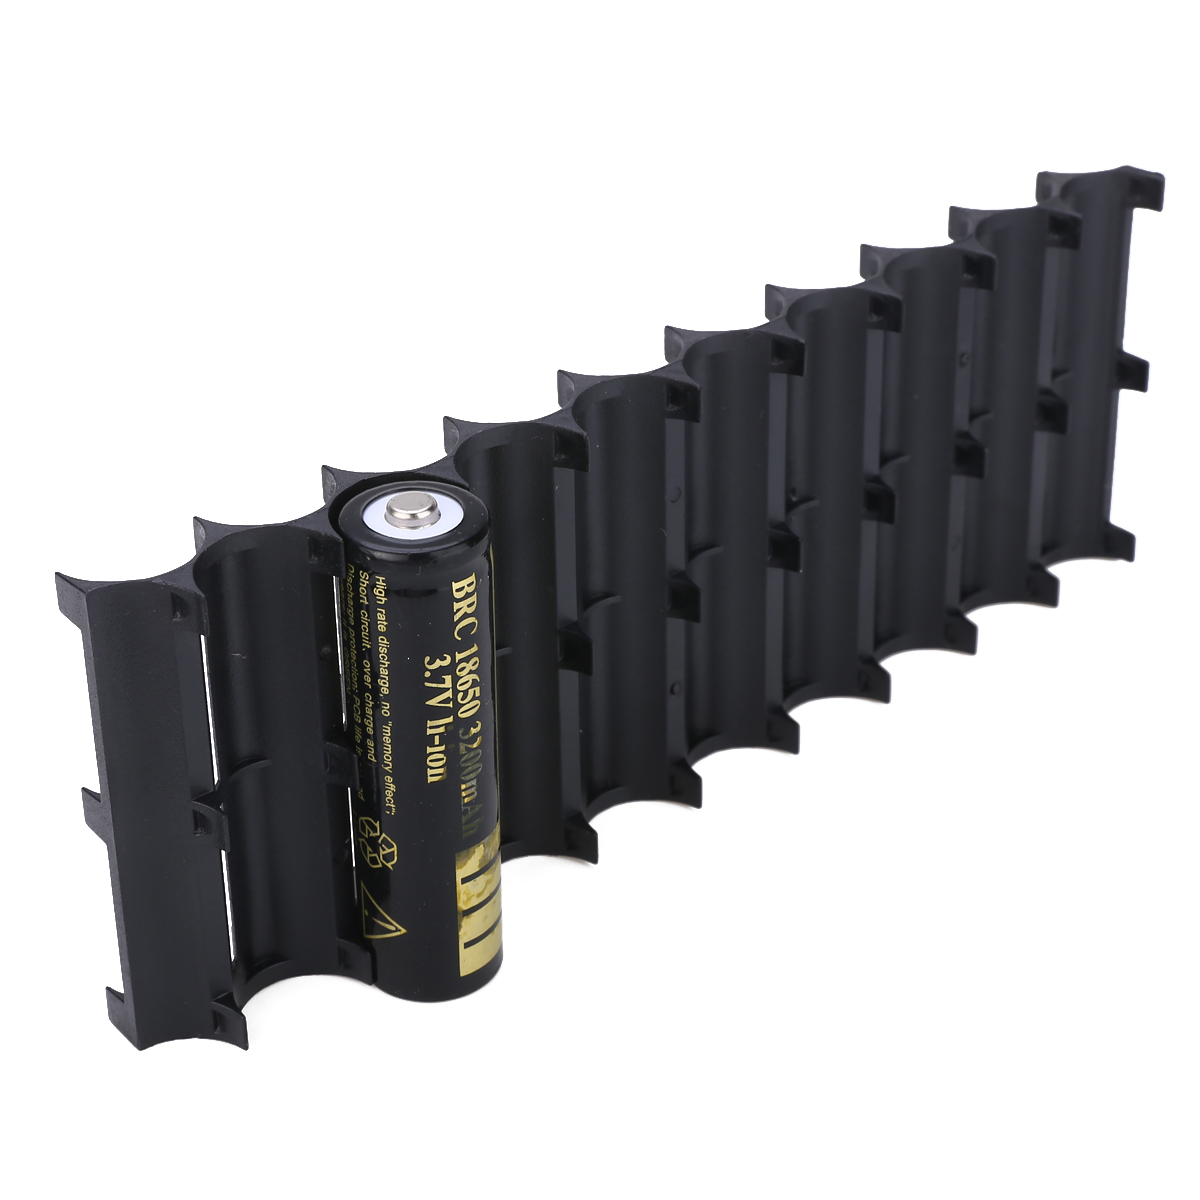 Newest 2pcs Black 10x Cell Plastic 18650 Battery Spacer Holder Cylindrical Cell Bracket For 18650 Battery Accessories in Battery Storage Boxes from Consumer Electronics